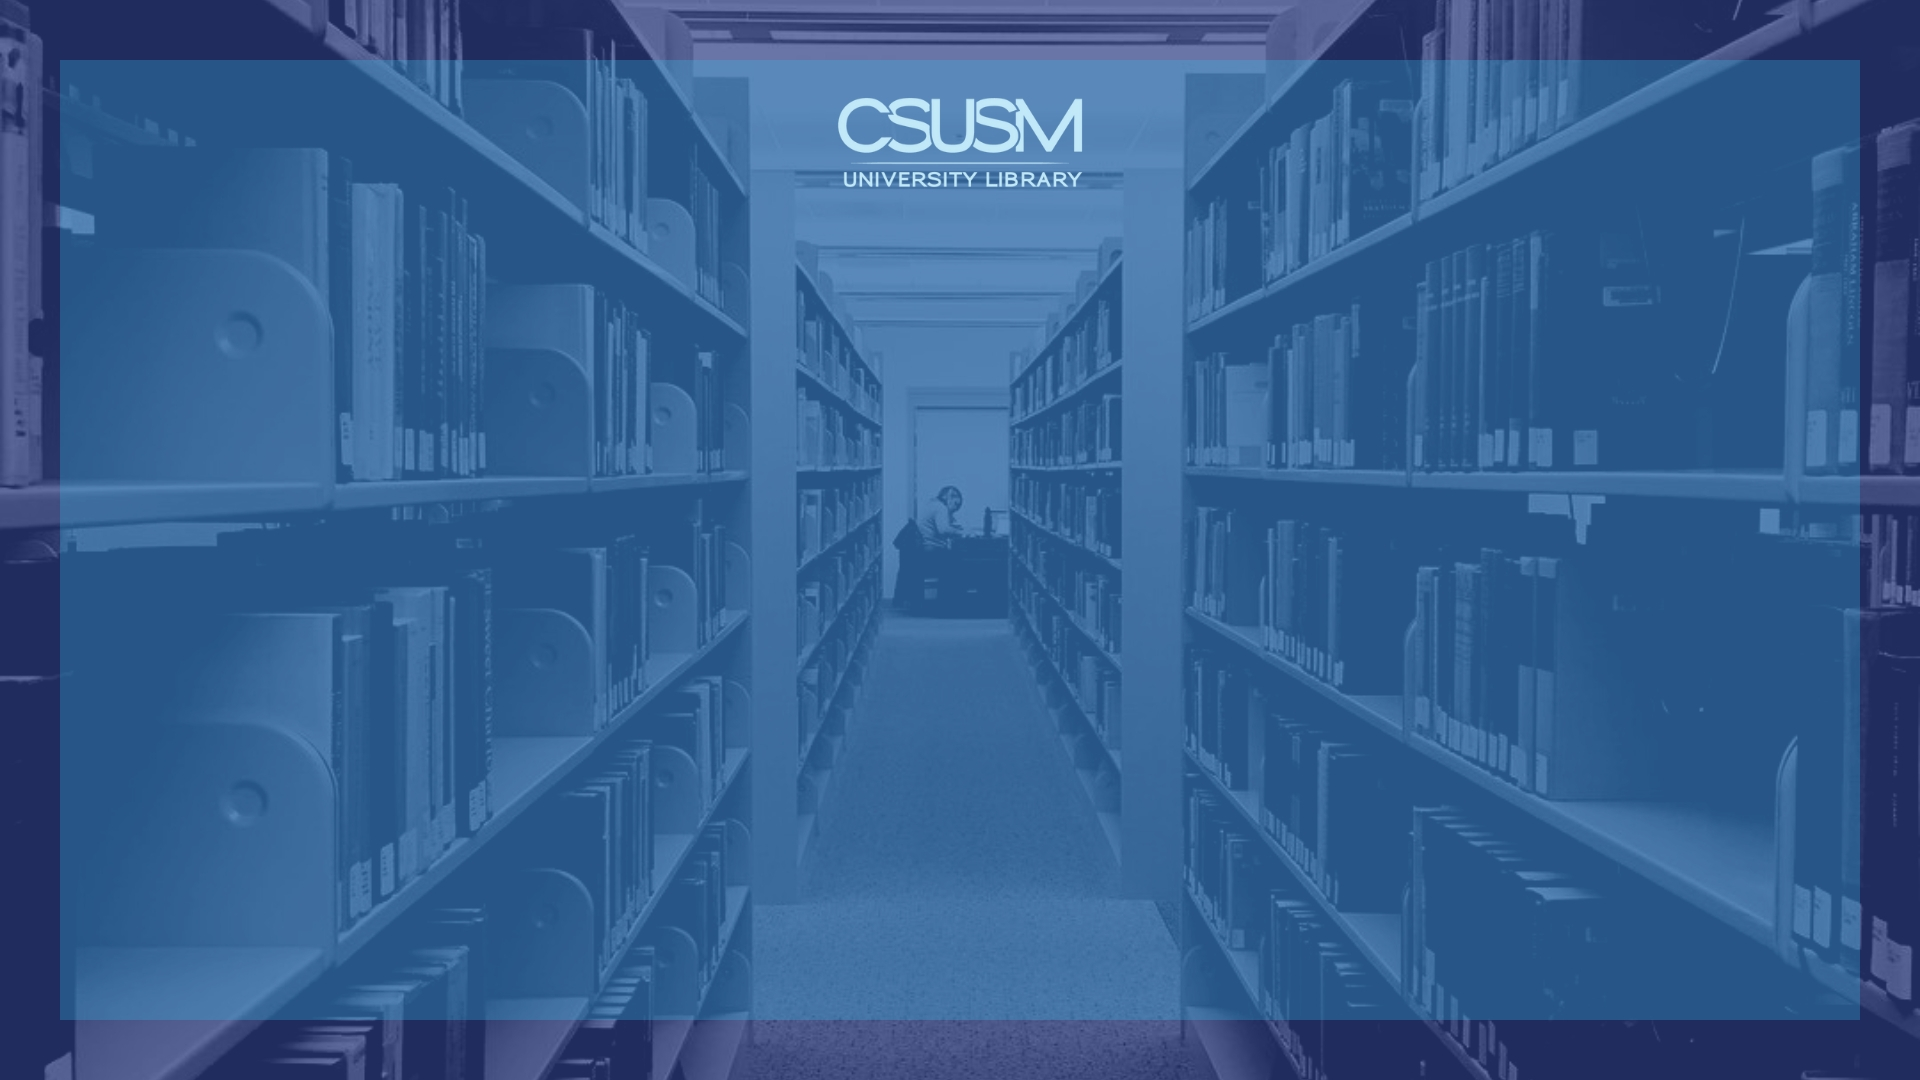 Zoom Background Library Internal Book Stacks Blue